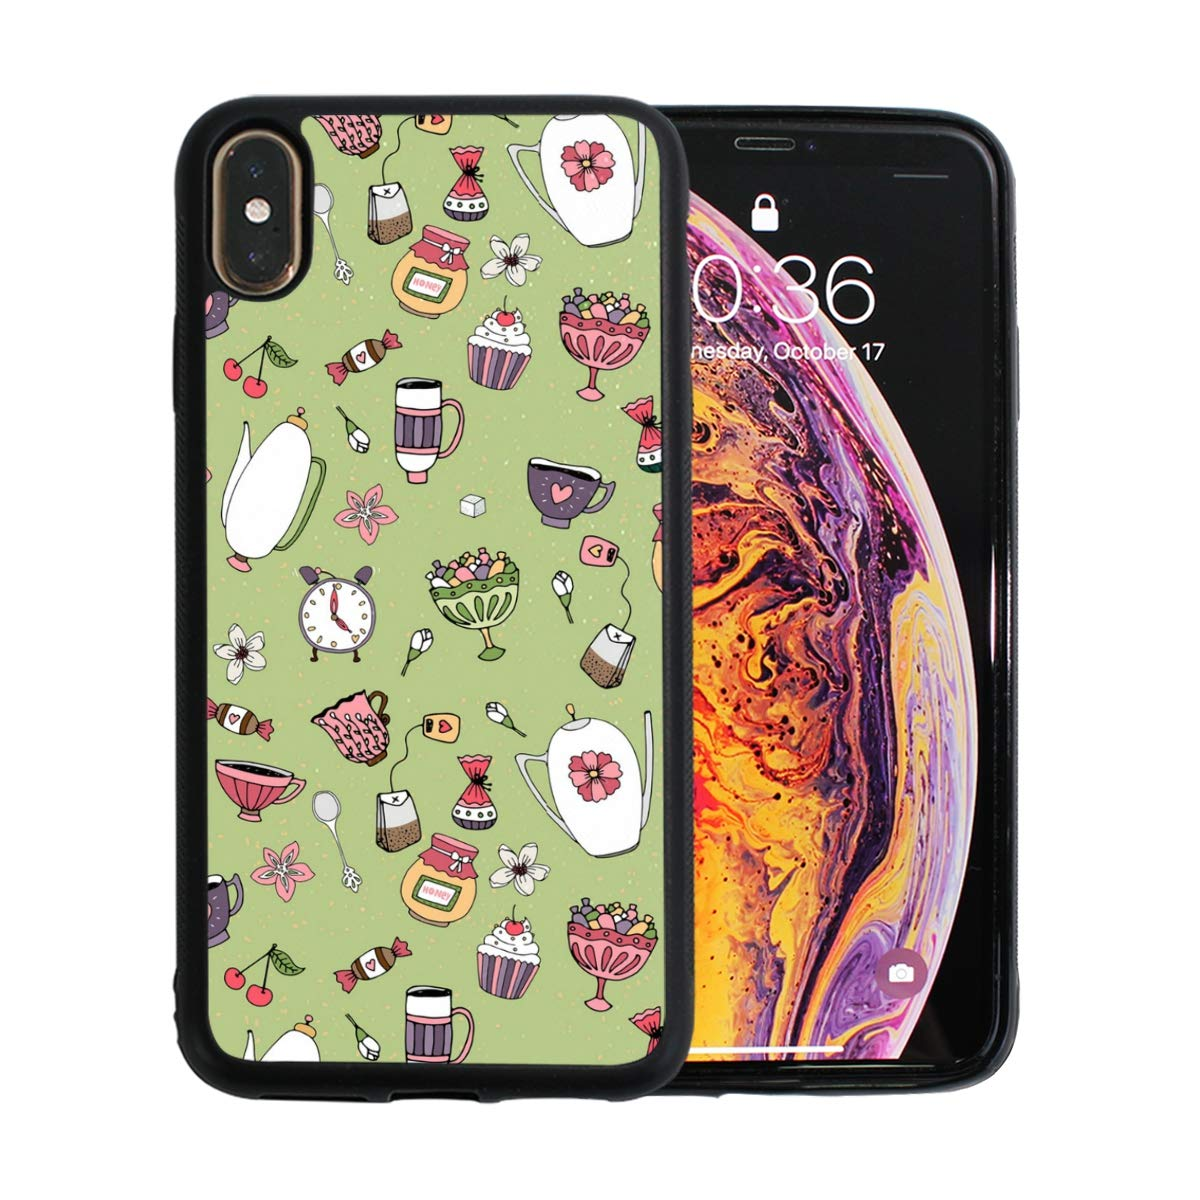 Matcha Cake Decorating Supplies Designed for Apple iPhone Xs MAX Case Scratch-Resistant Ultra-Thin Case